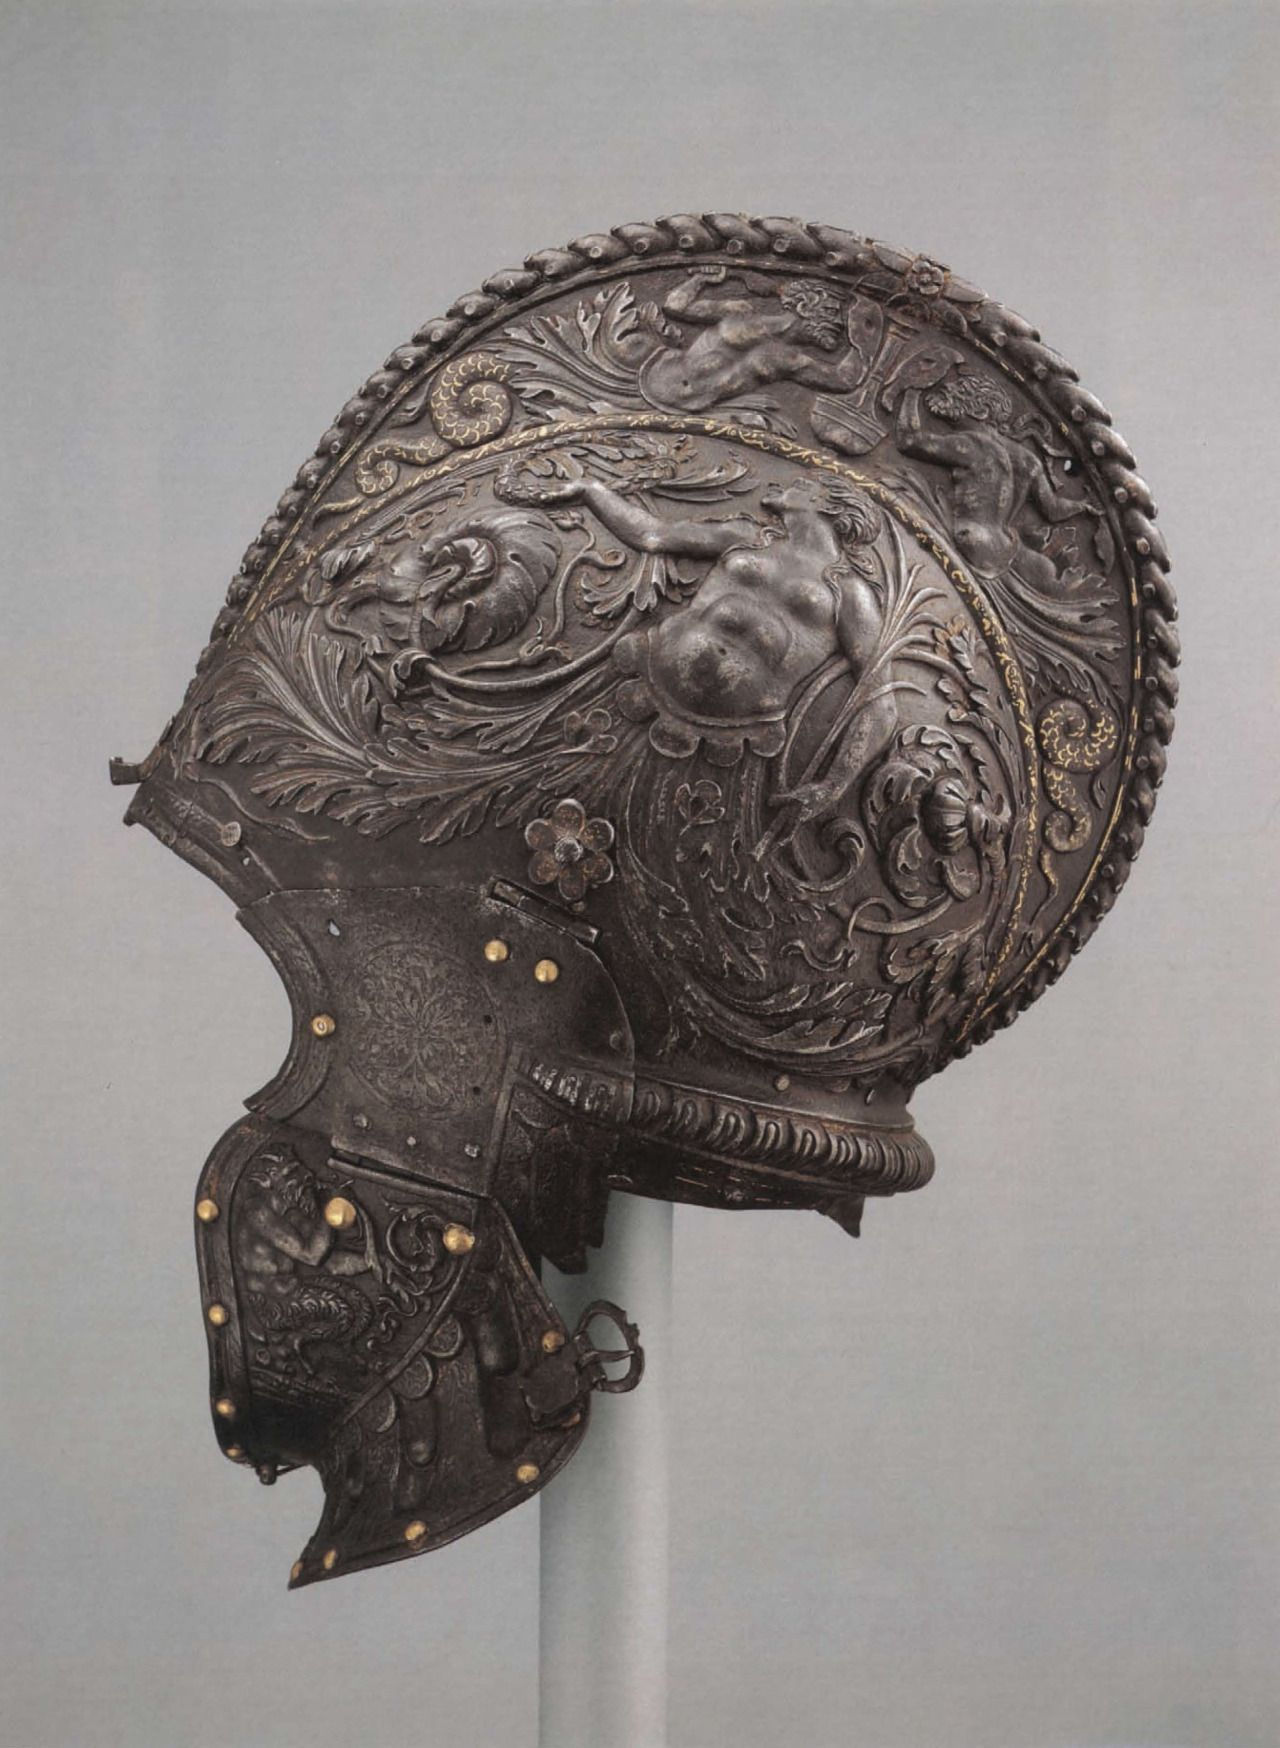 Milanese made burgonet from the mid-16th century. Visor is lost. (The MET)